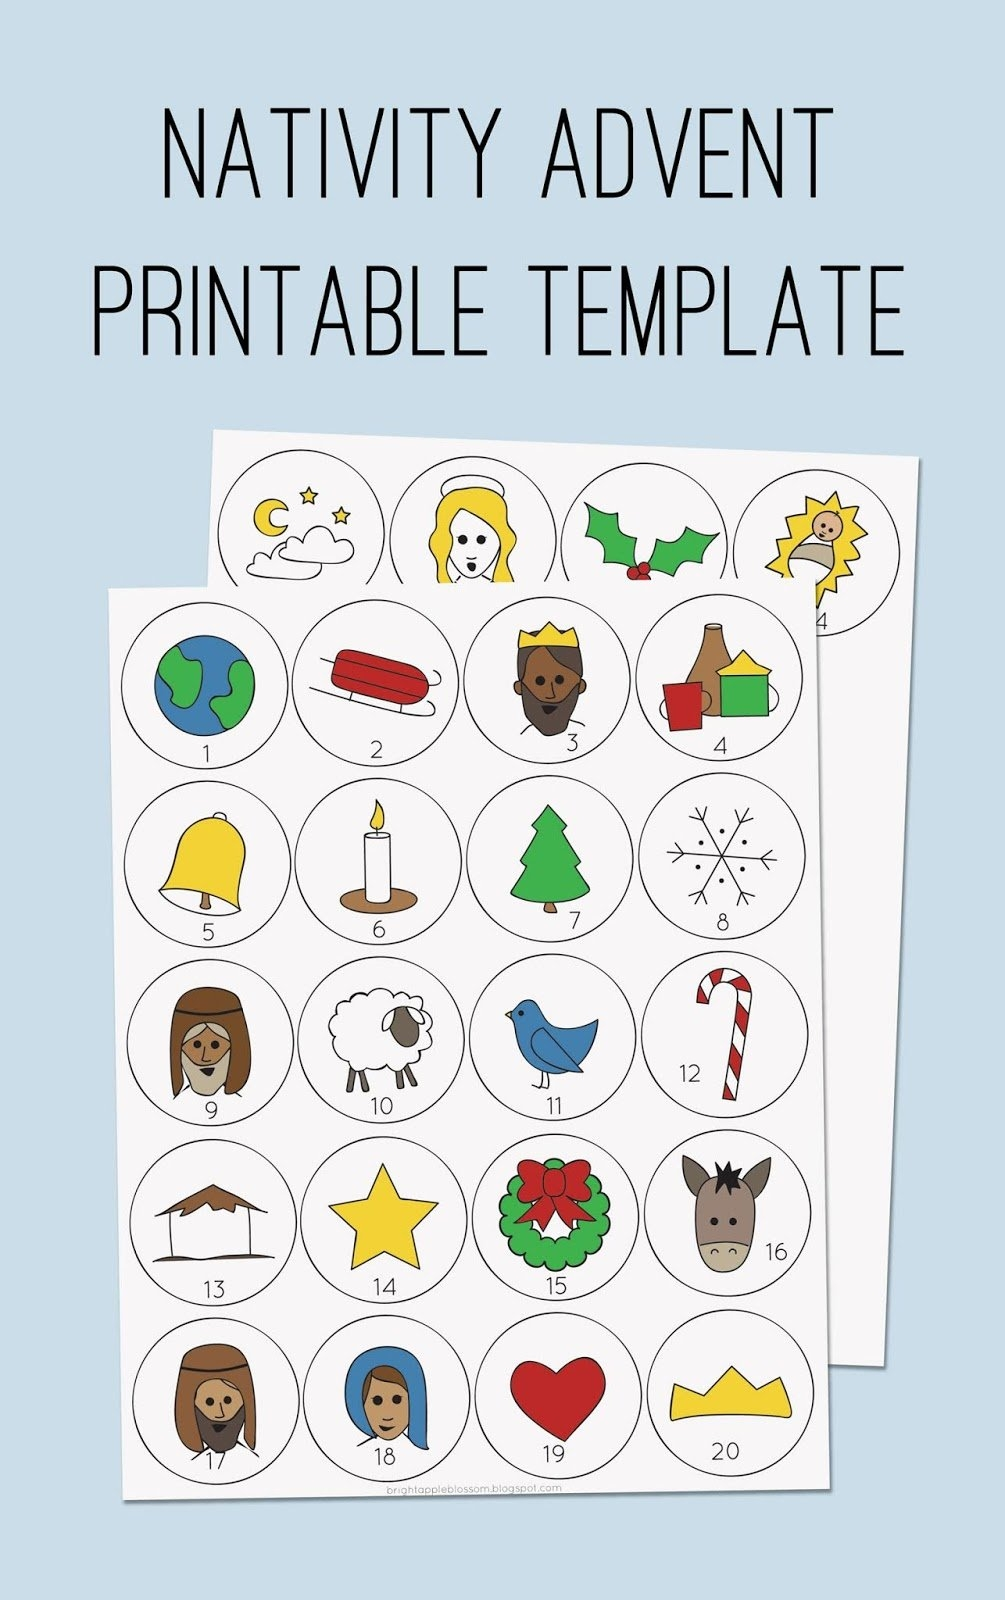 Nativity Advent Template - Bright Apple Blossom intended for Template For Advent Calendar